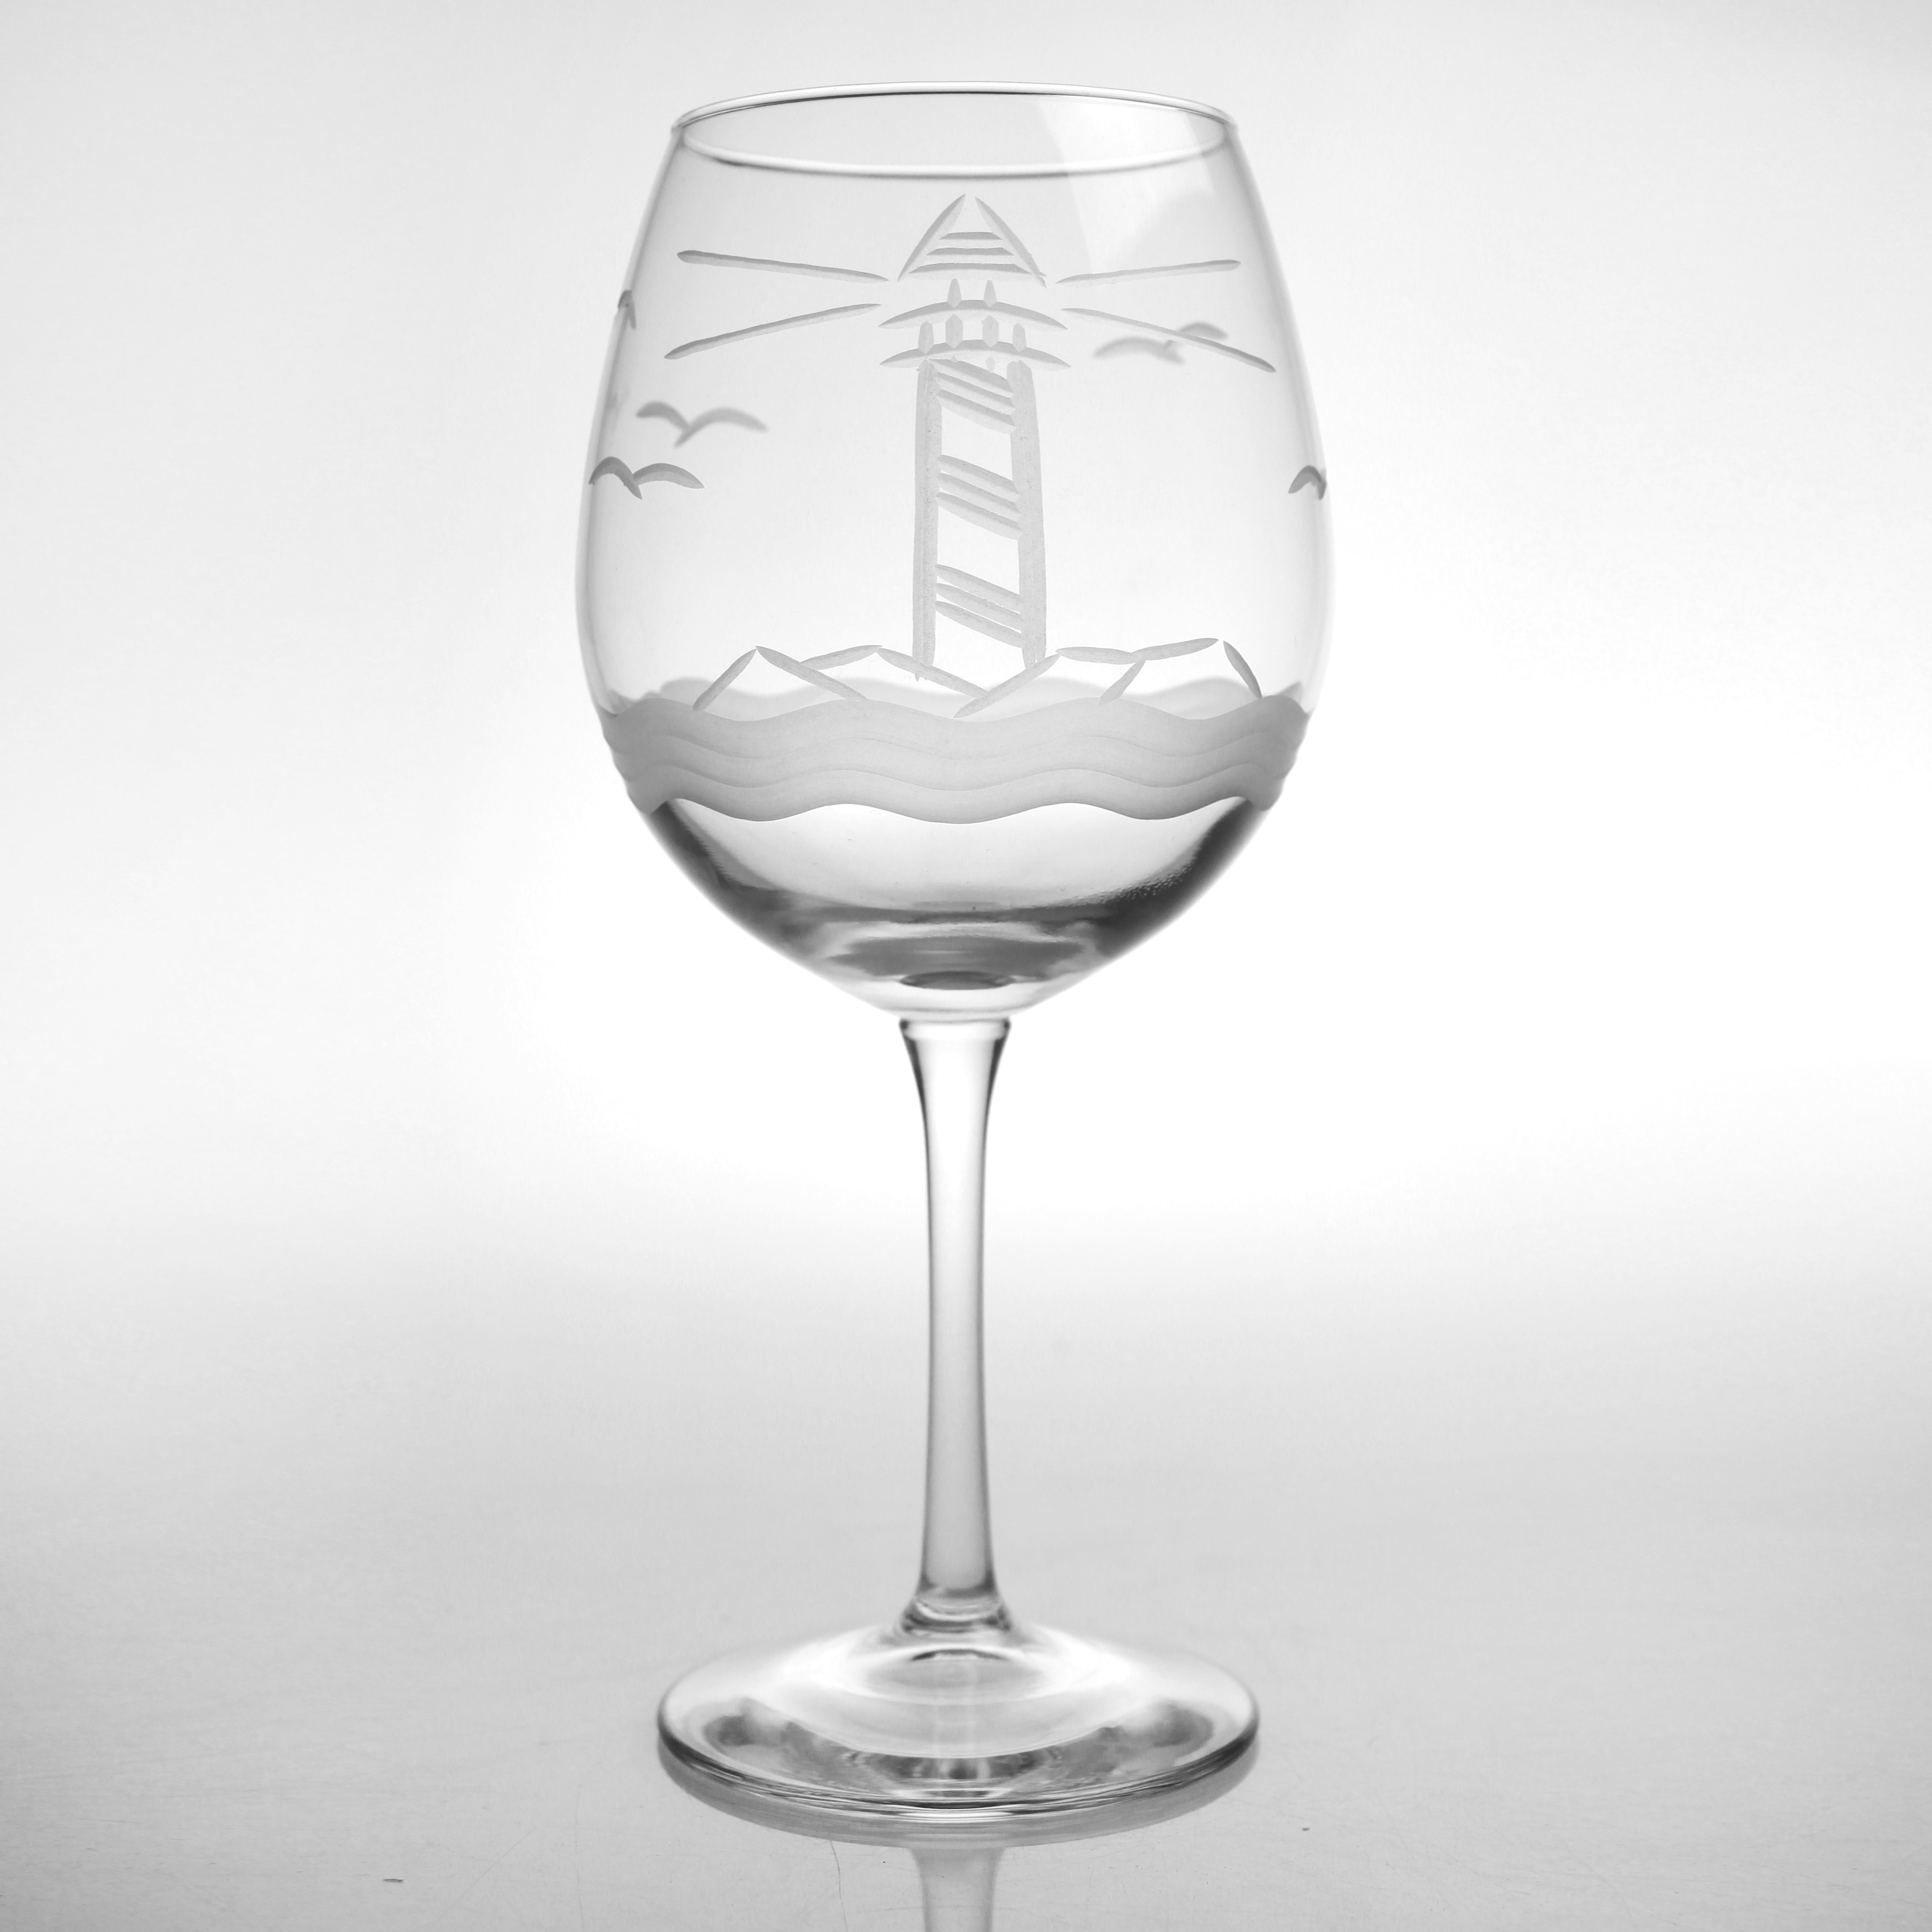 Etched Light Breeze Balloon Wine Glass (set of 4)